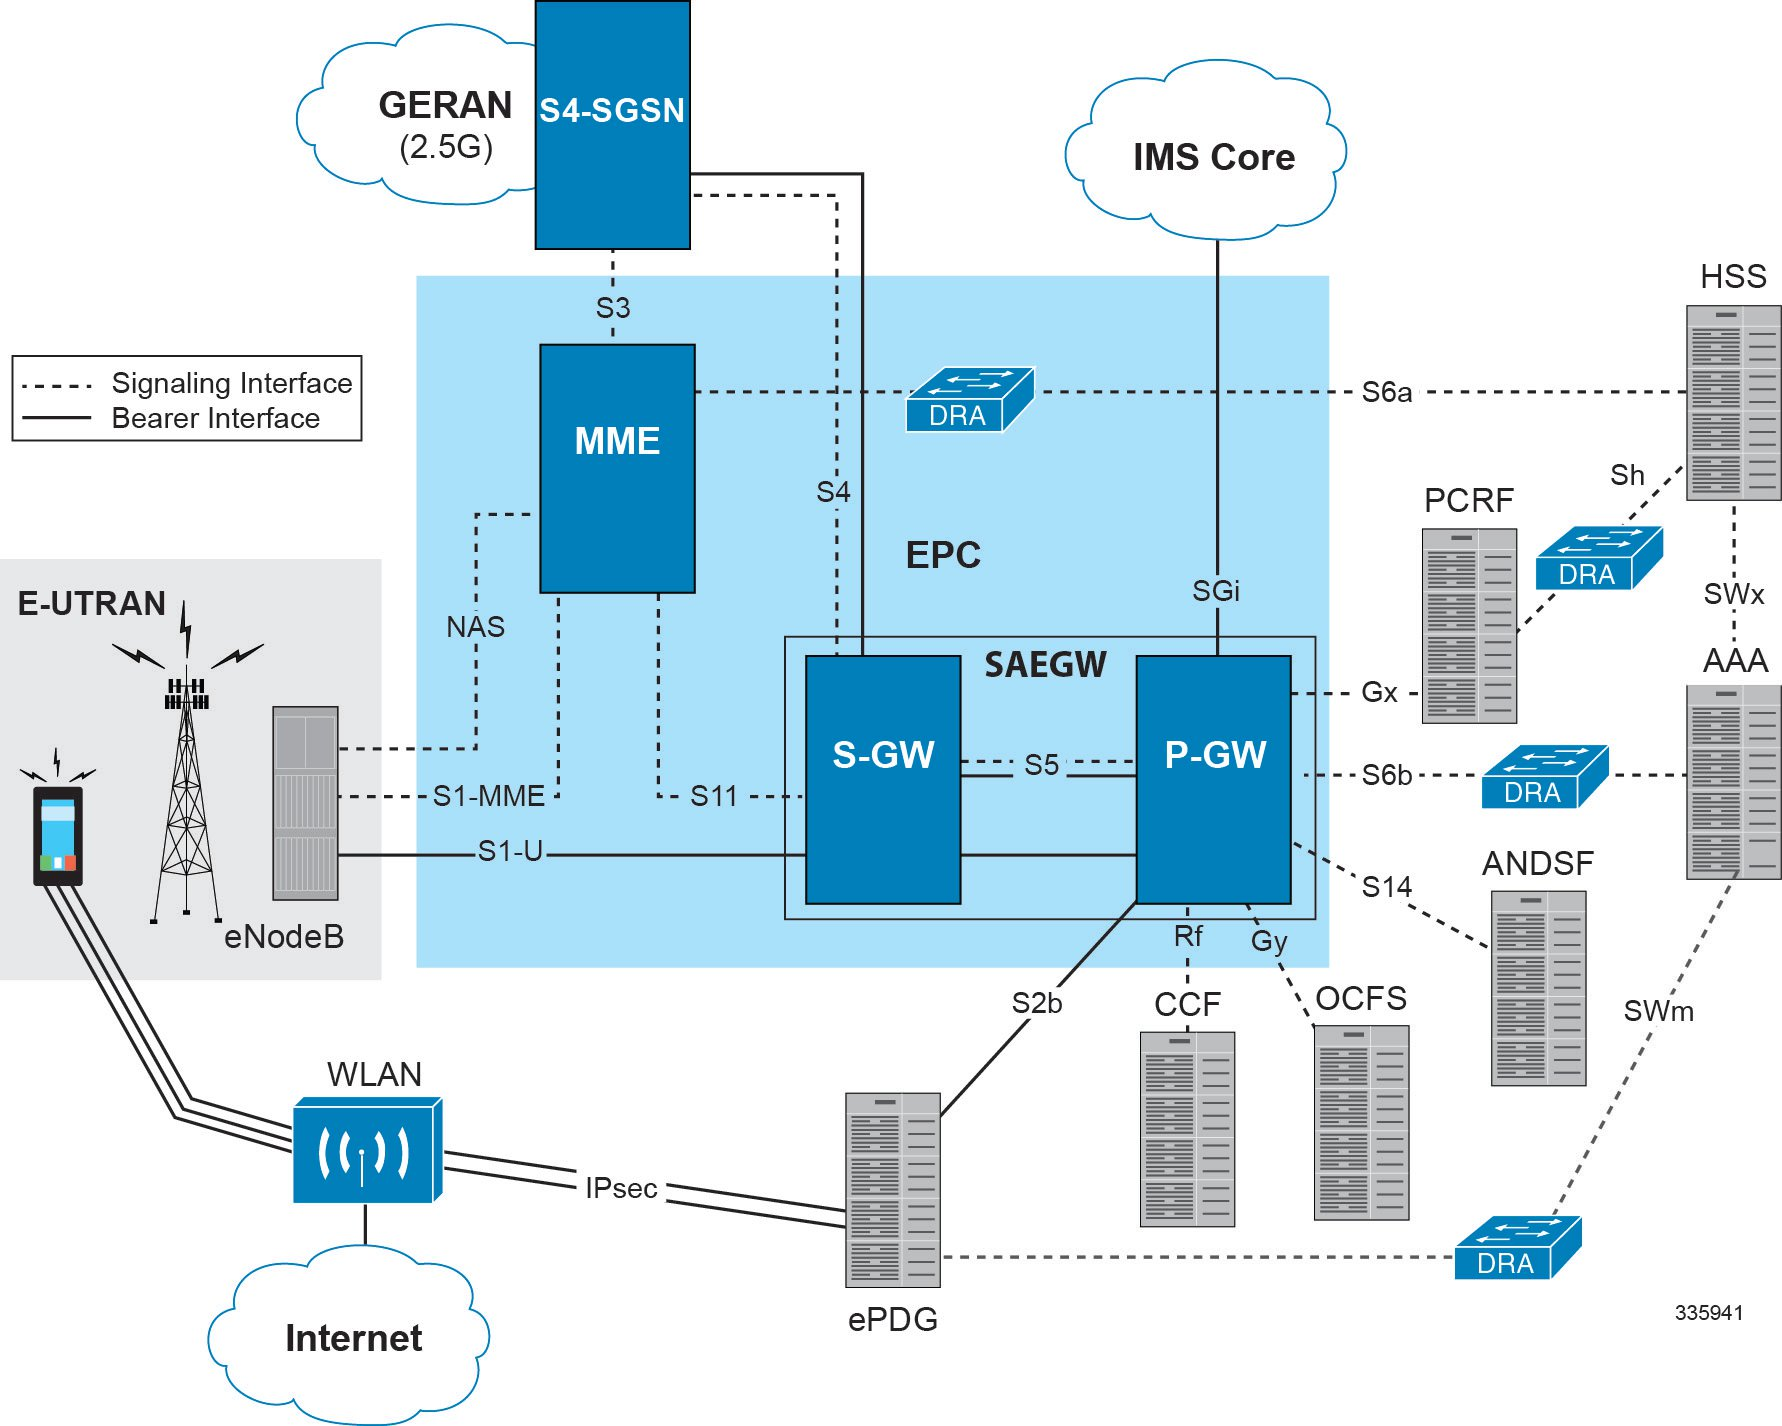 Sae gw administration guide staros release 20 gtp based for Architecture wifi